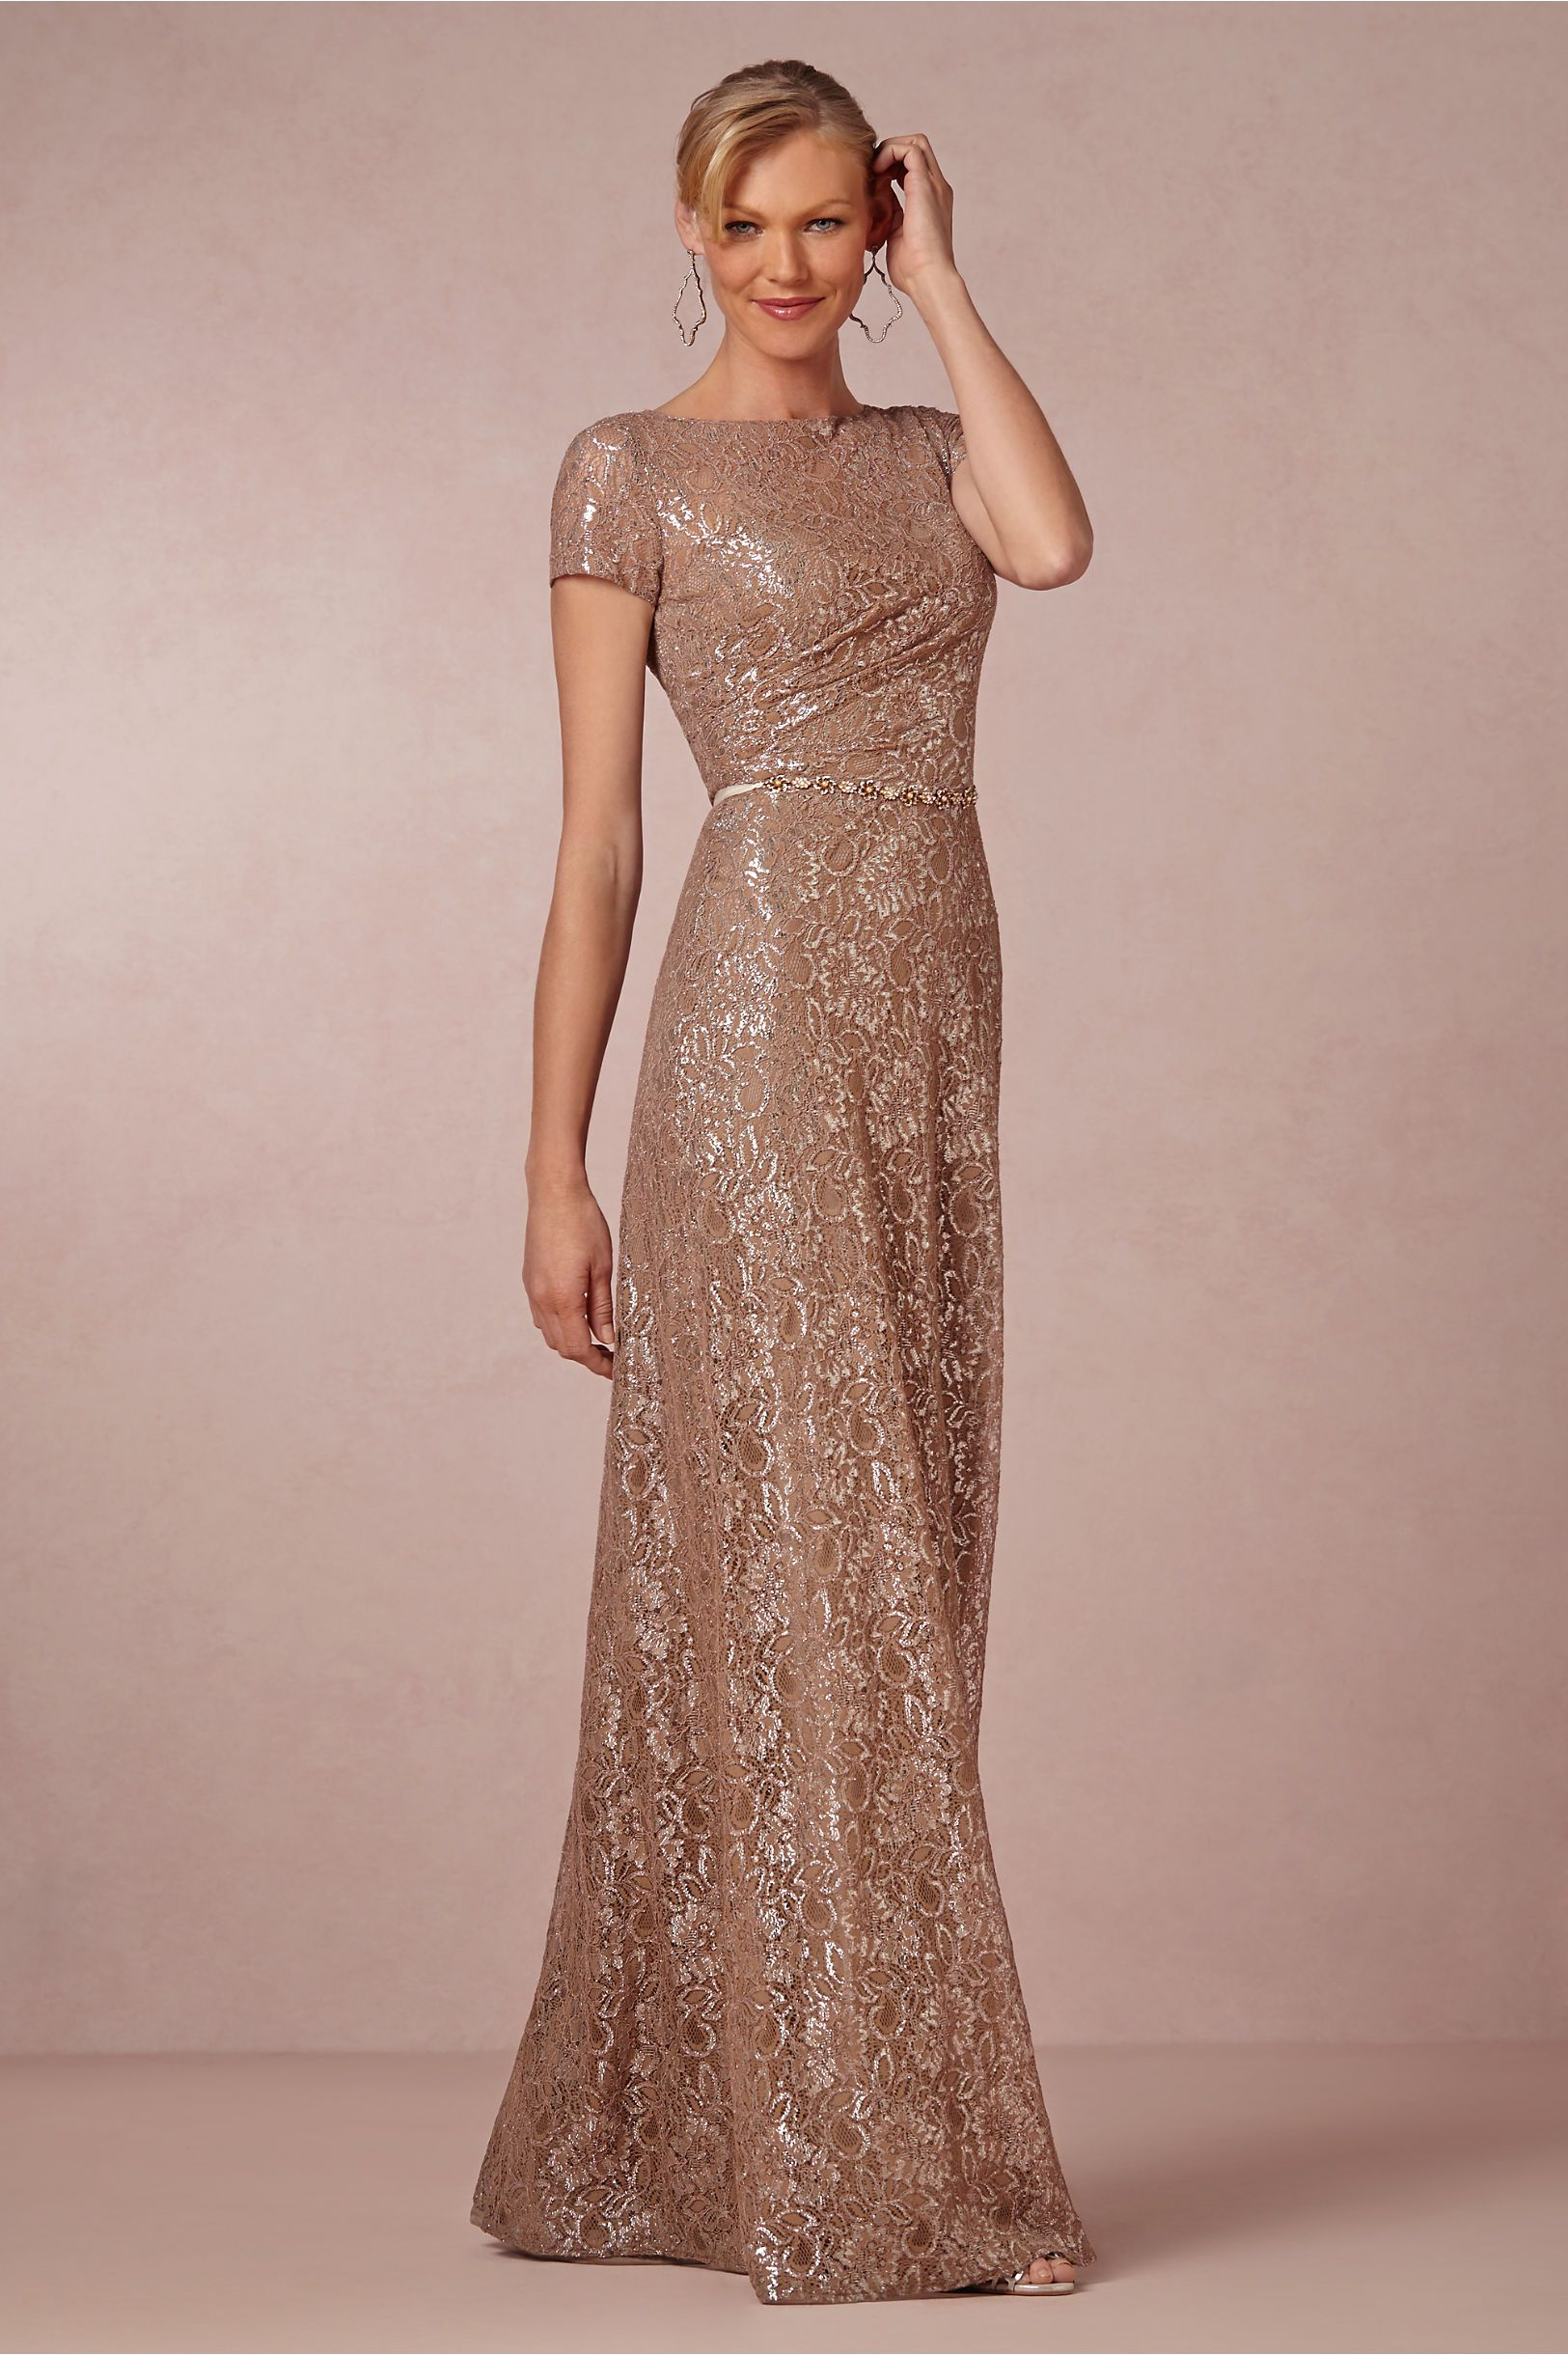 86bfd1118e1 Dusky Pink Dress - for bride or bridesmaids